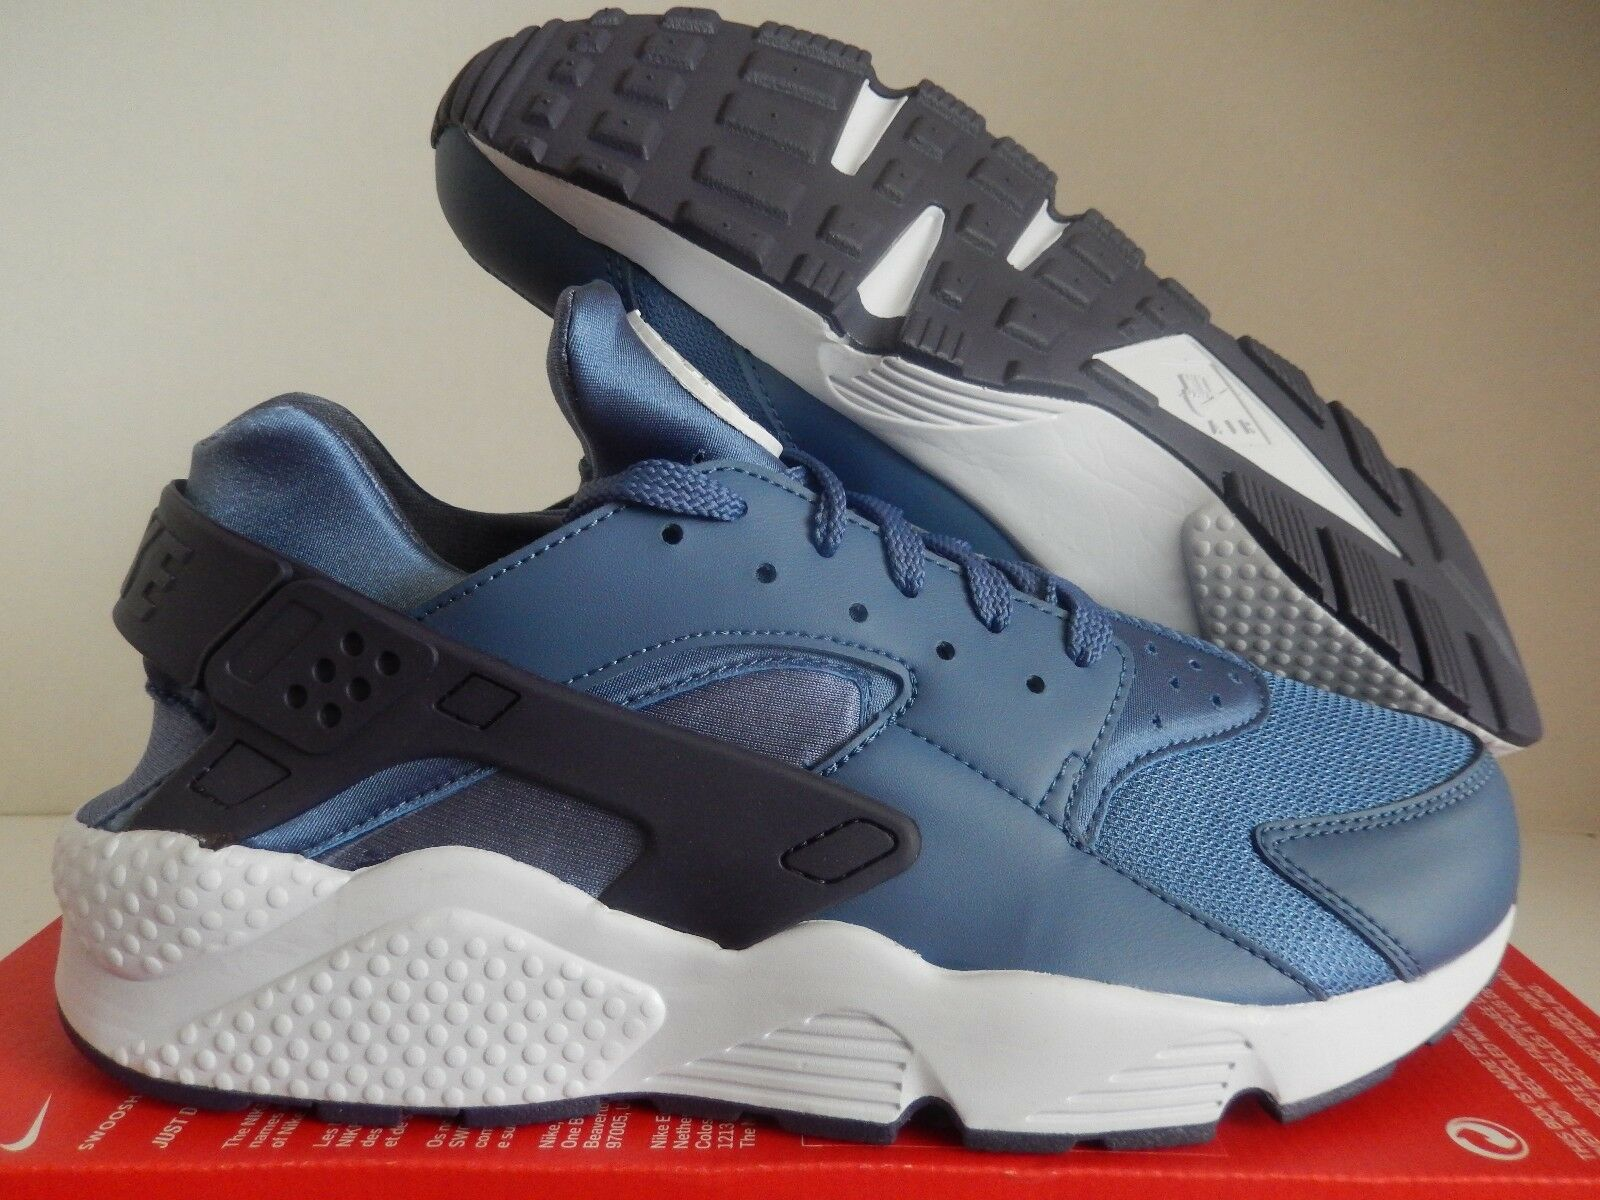 NIKE AIR HUARACHE BLUE MOON-PALE GREY Price reduction Seasonal clearance sale